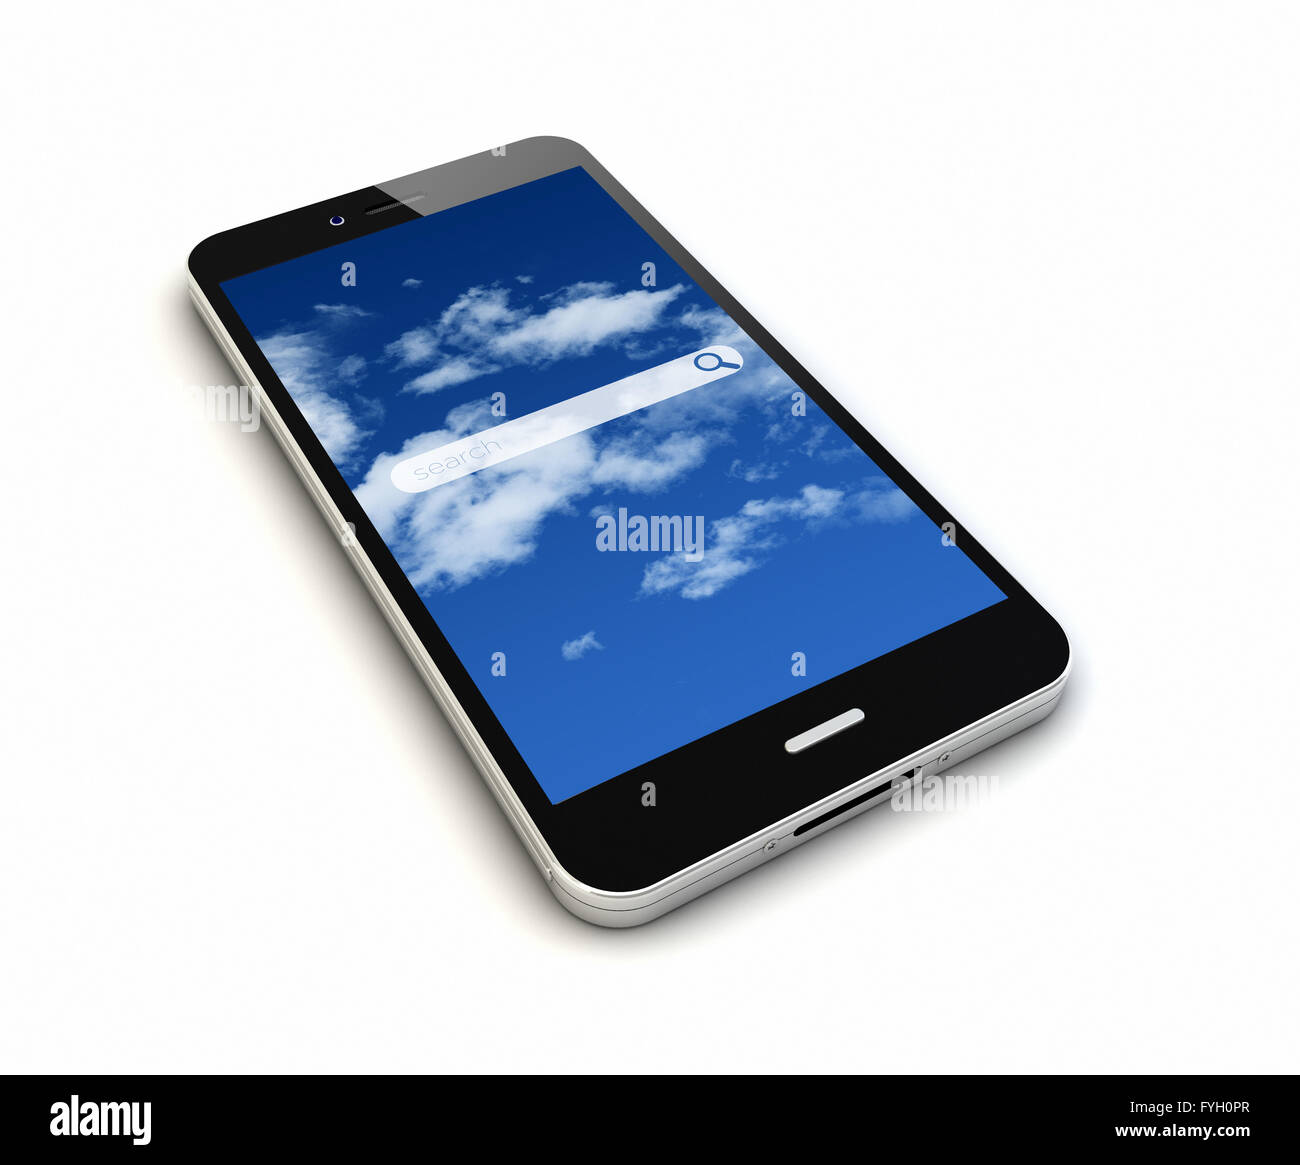 render of an original smartphone with online search application on the screen - Stock Image